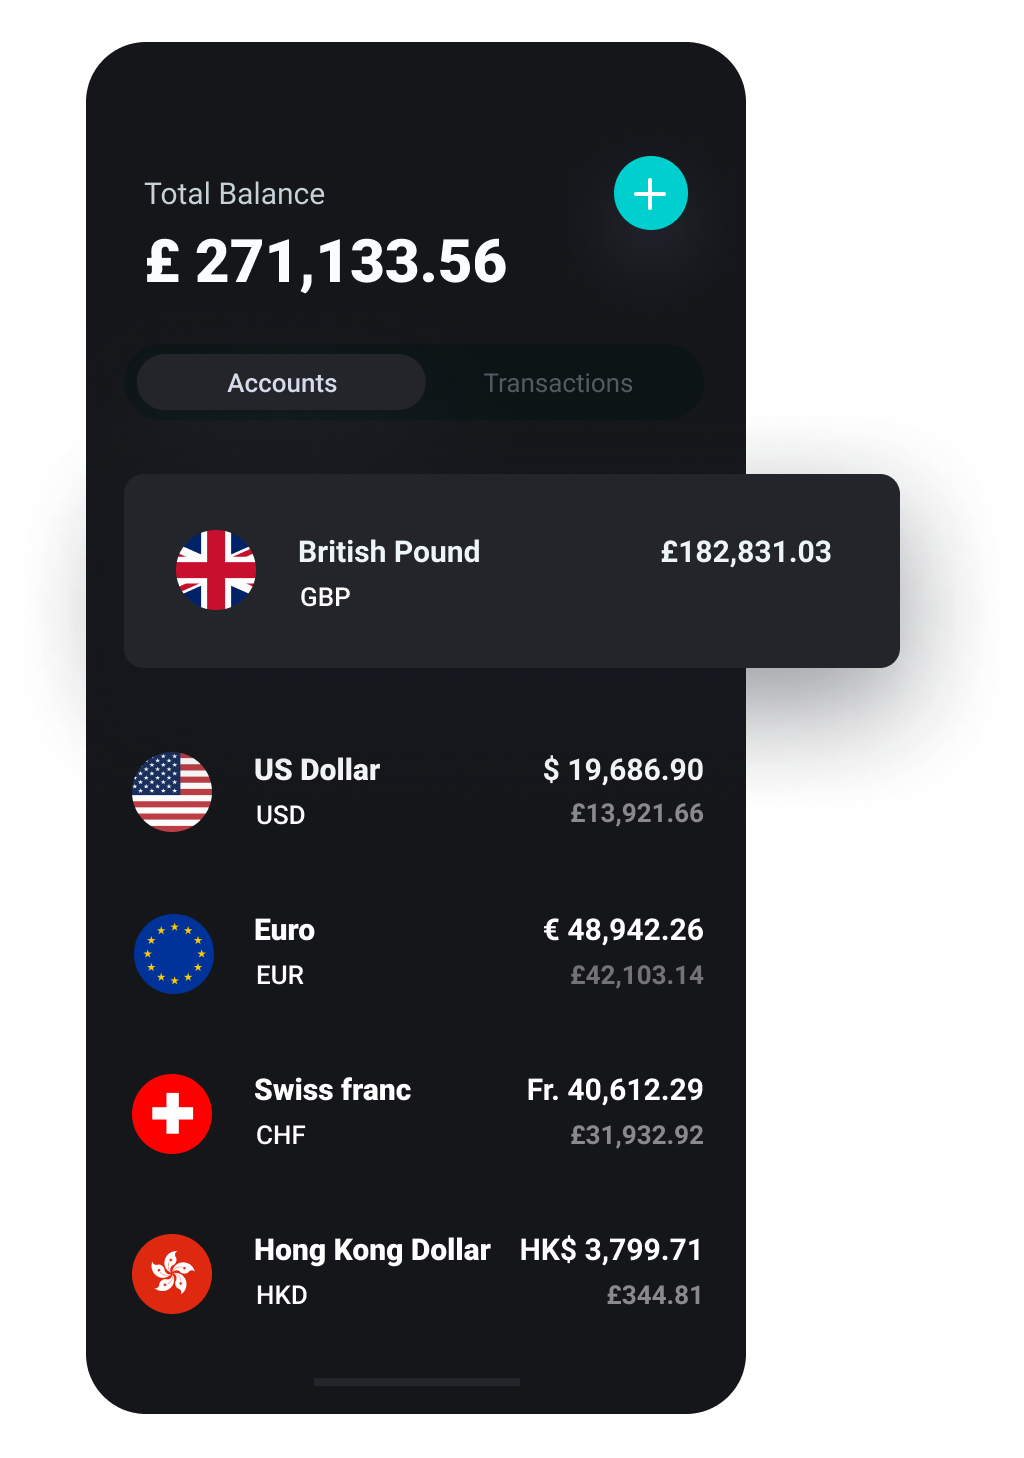 Mobile screen with grey background showing multi-currenty bank accounts and total balance within incard app